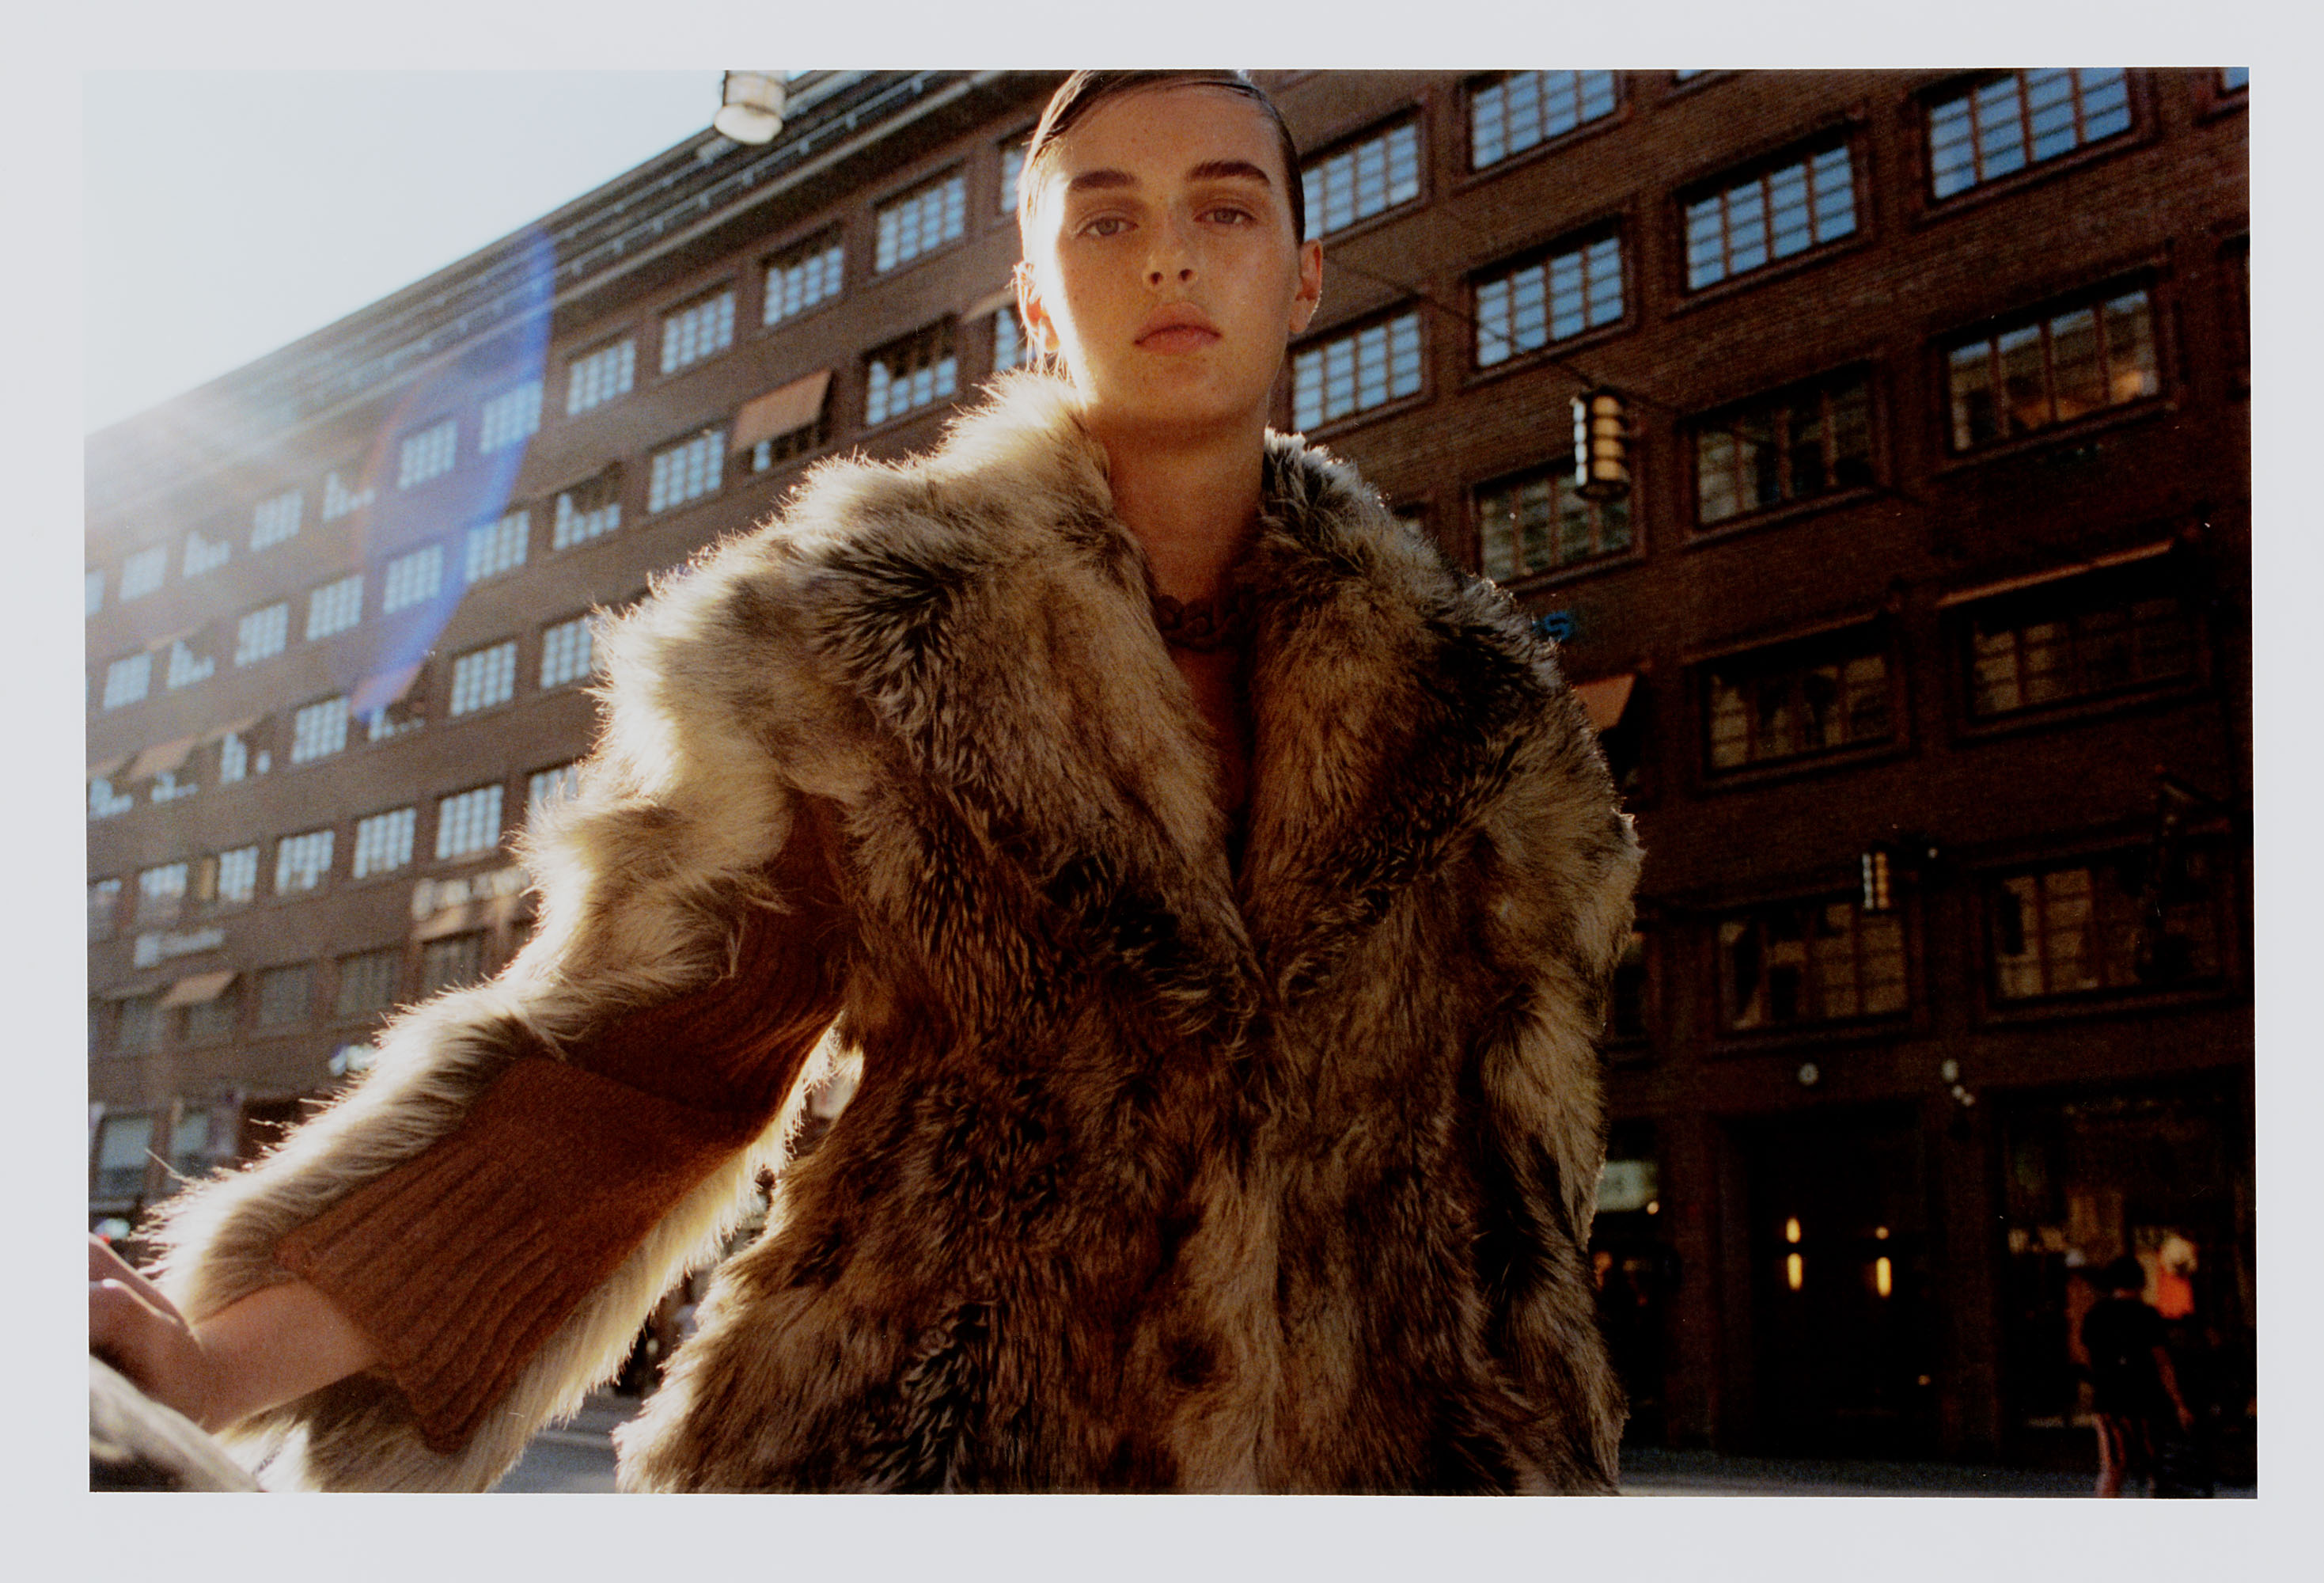 Emma Poilblanc by Luca Campri for ODDA Magazine